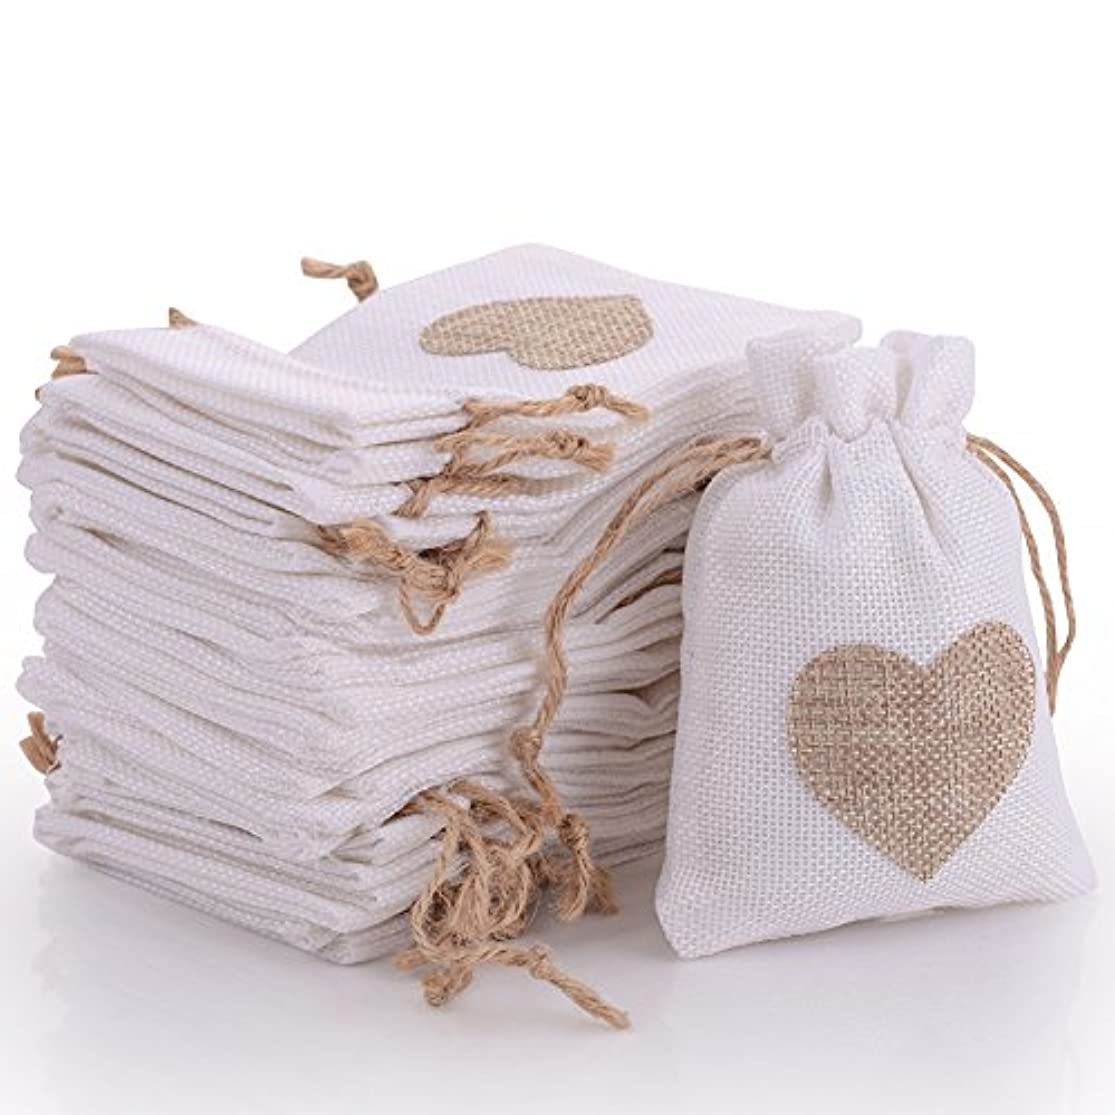 30pcs Burlap Bags Gift Pouches Heart Small Candy Jewelry Storage Package Sack for Wedding Bridal Shower Birthday Party Christmas Valentine's Day Favors DIY Craft, White 5.5x3.7 inch djdiupvc6